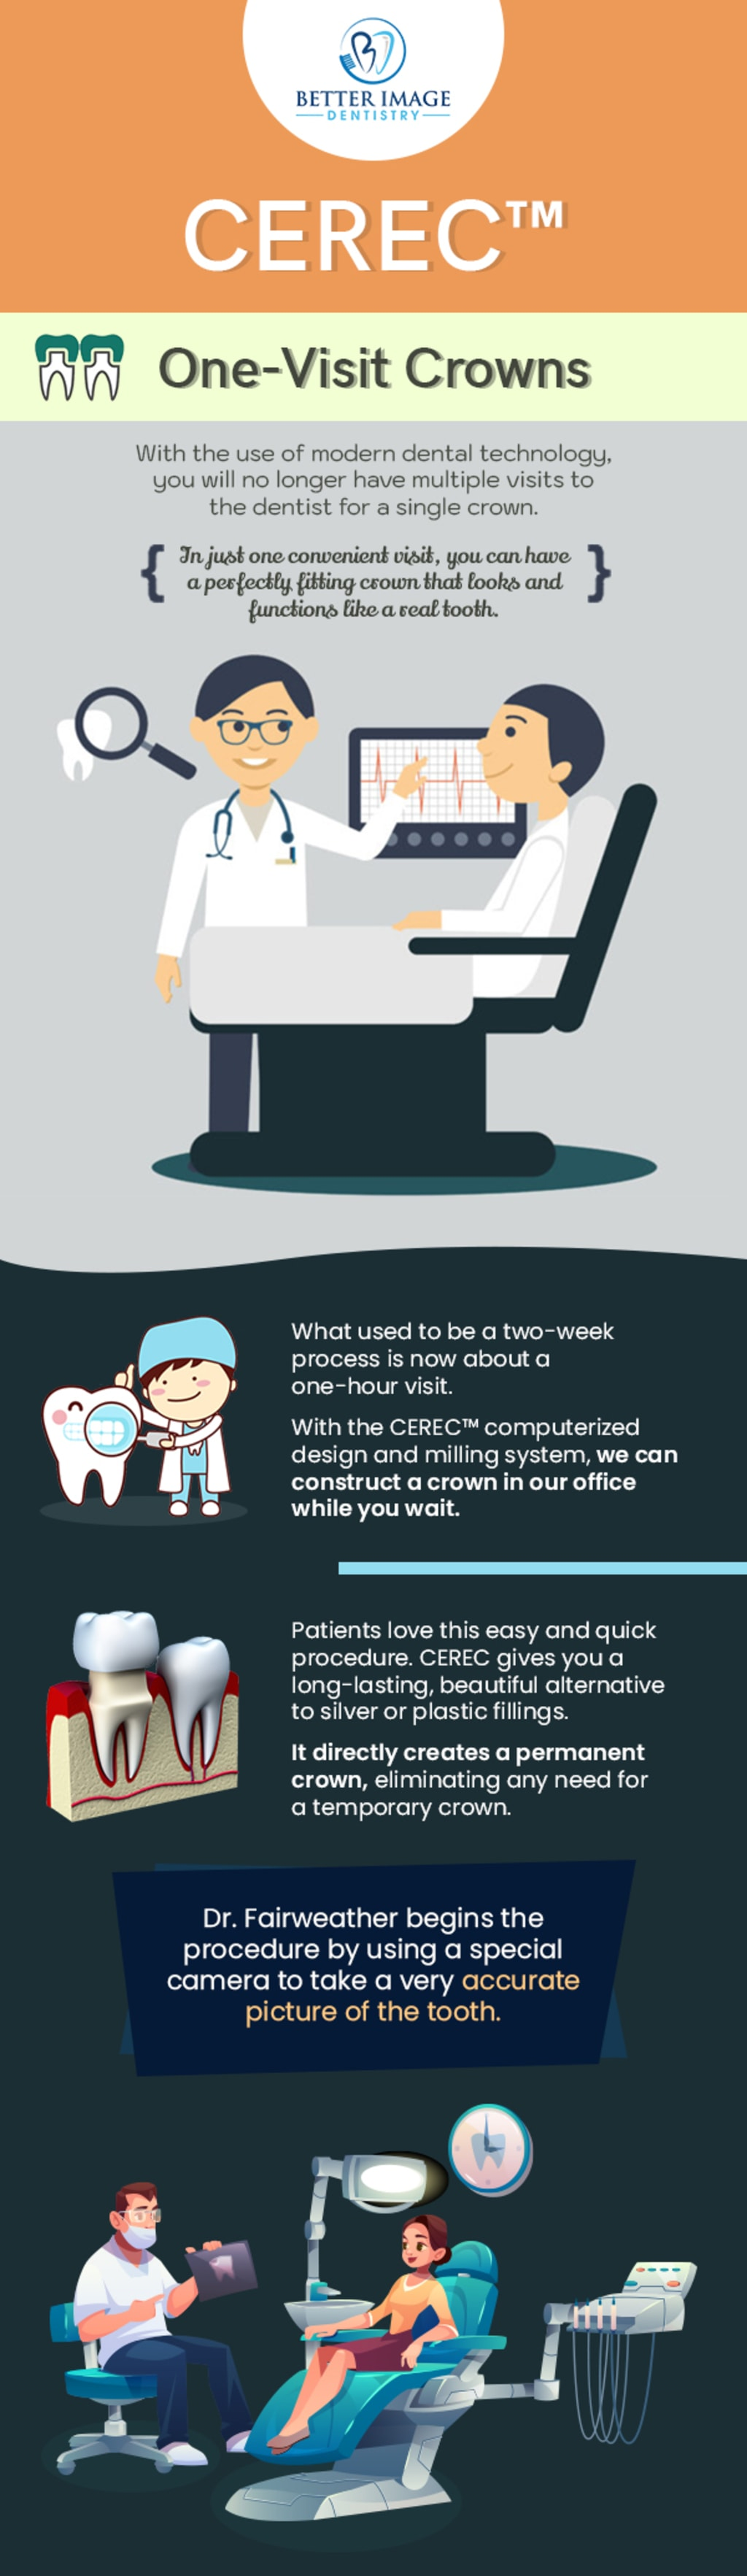 Get Natural-looking, Tooth-Coloured Crowns in One-visit from... via Better Image Dentistry